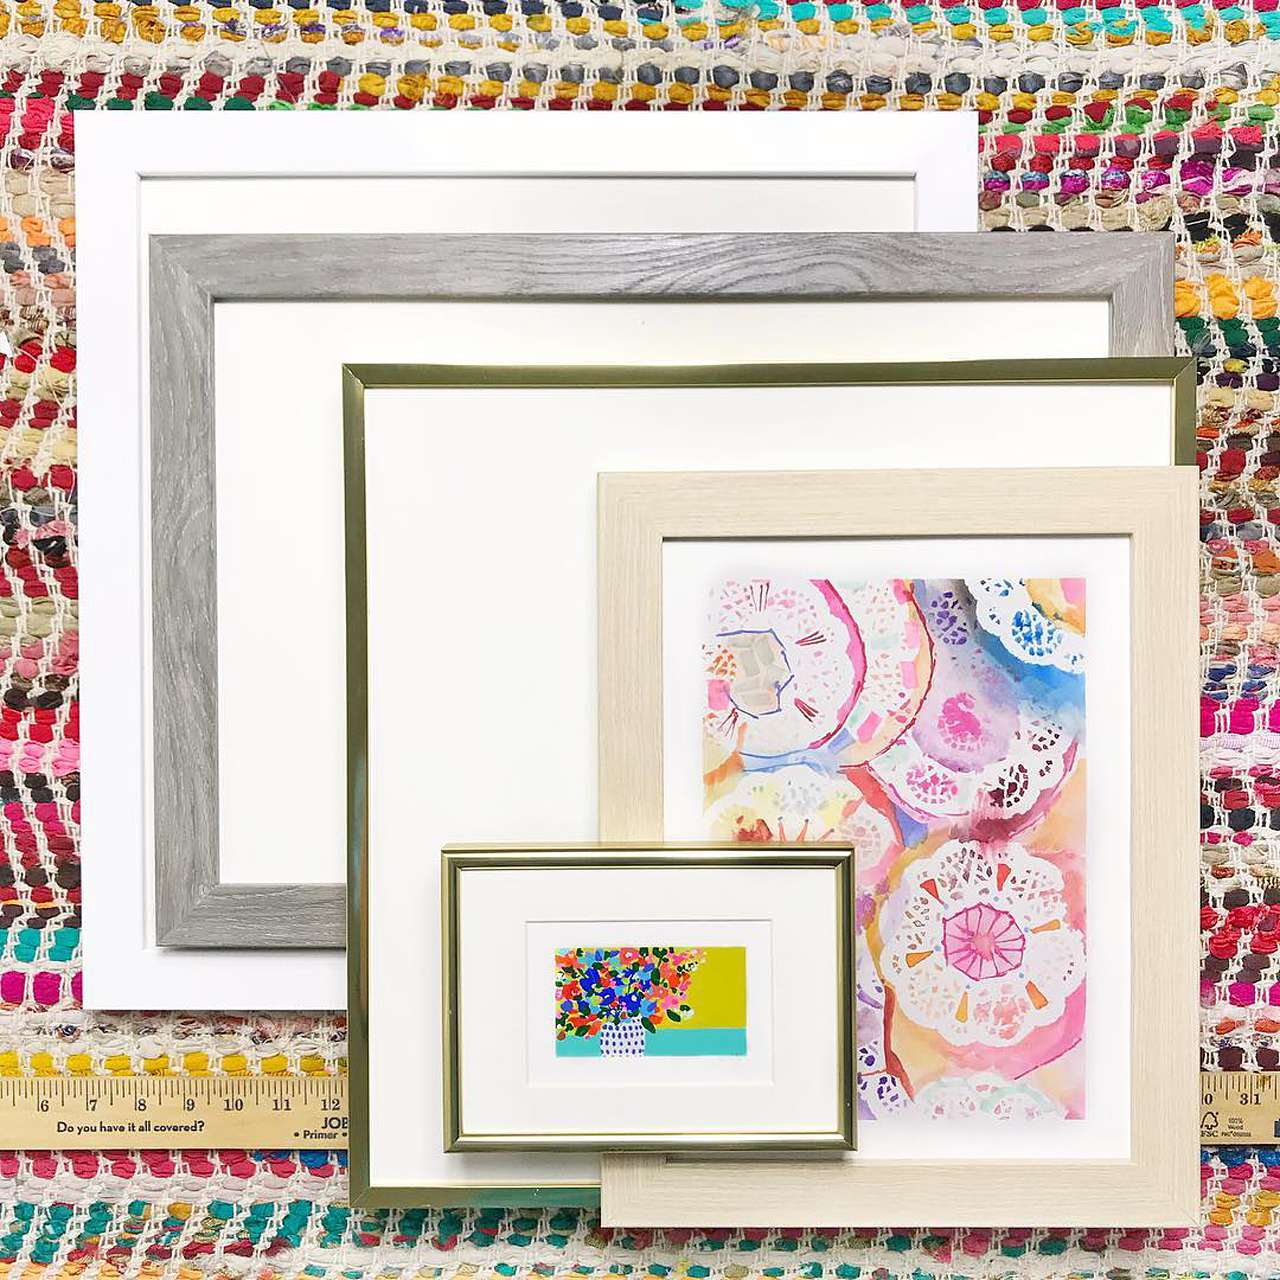 Buy any size custom picture frame online